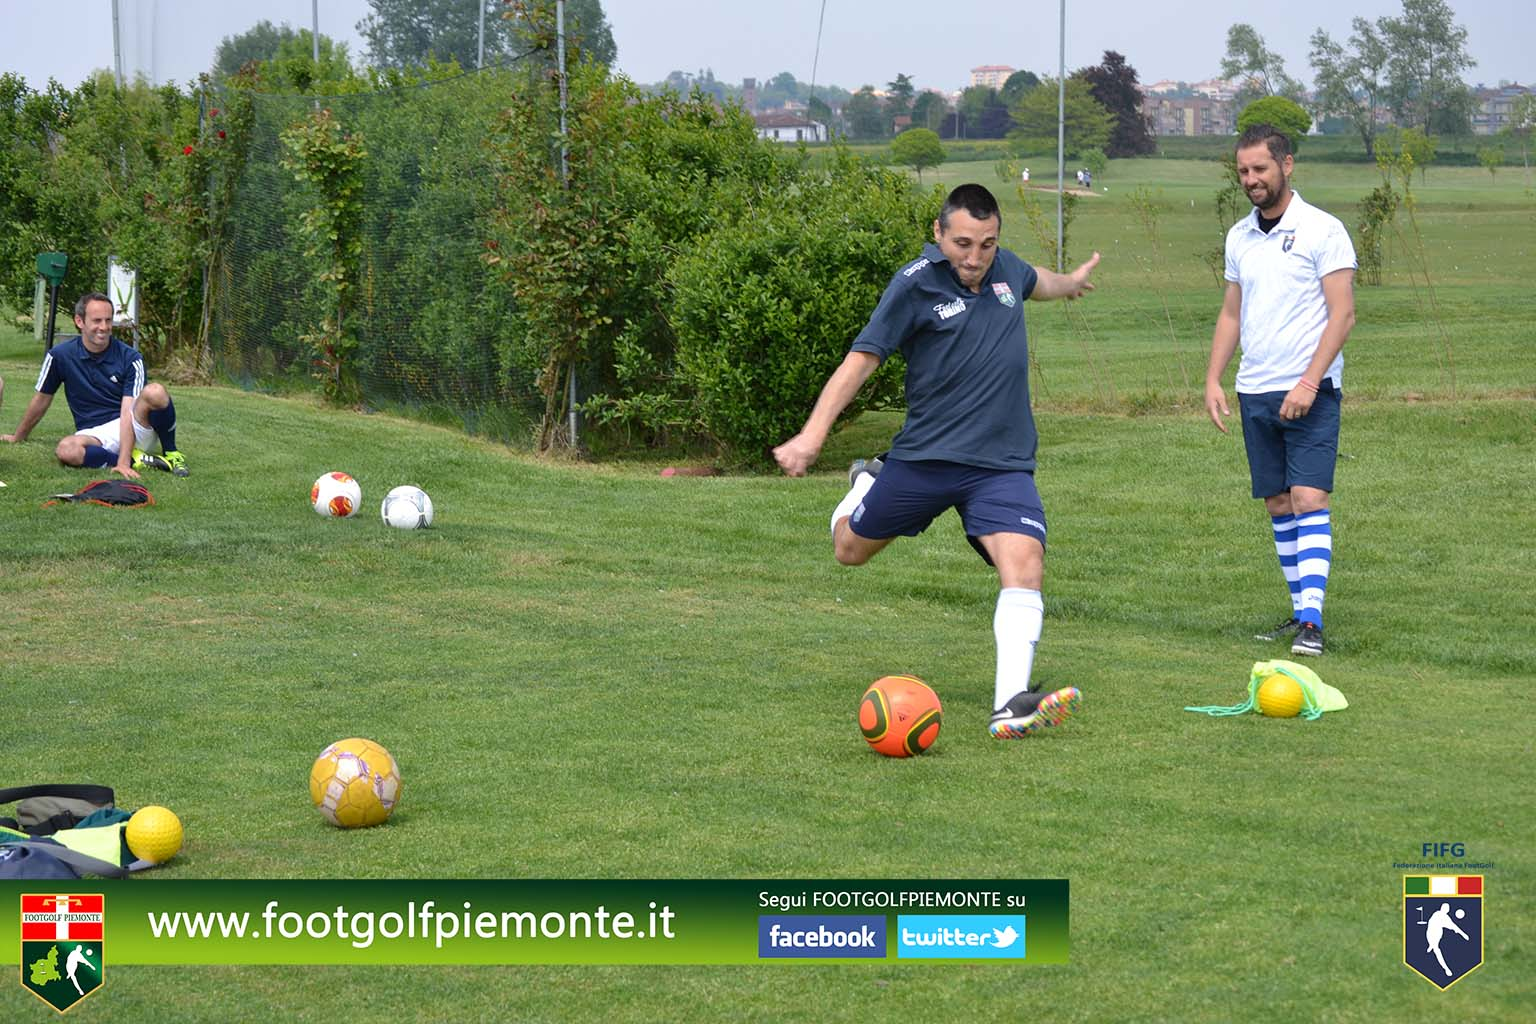 FOTO 9 Regions' Cup Footgolf Piemonte 2016 Golf Città di Asti (At) 30apr16-86